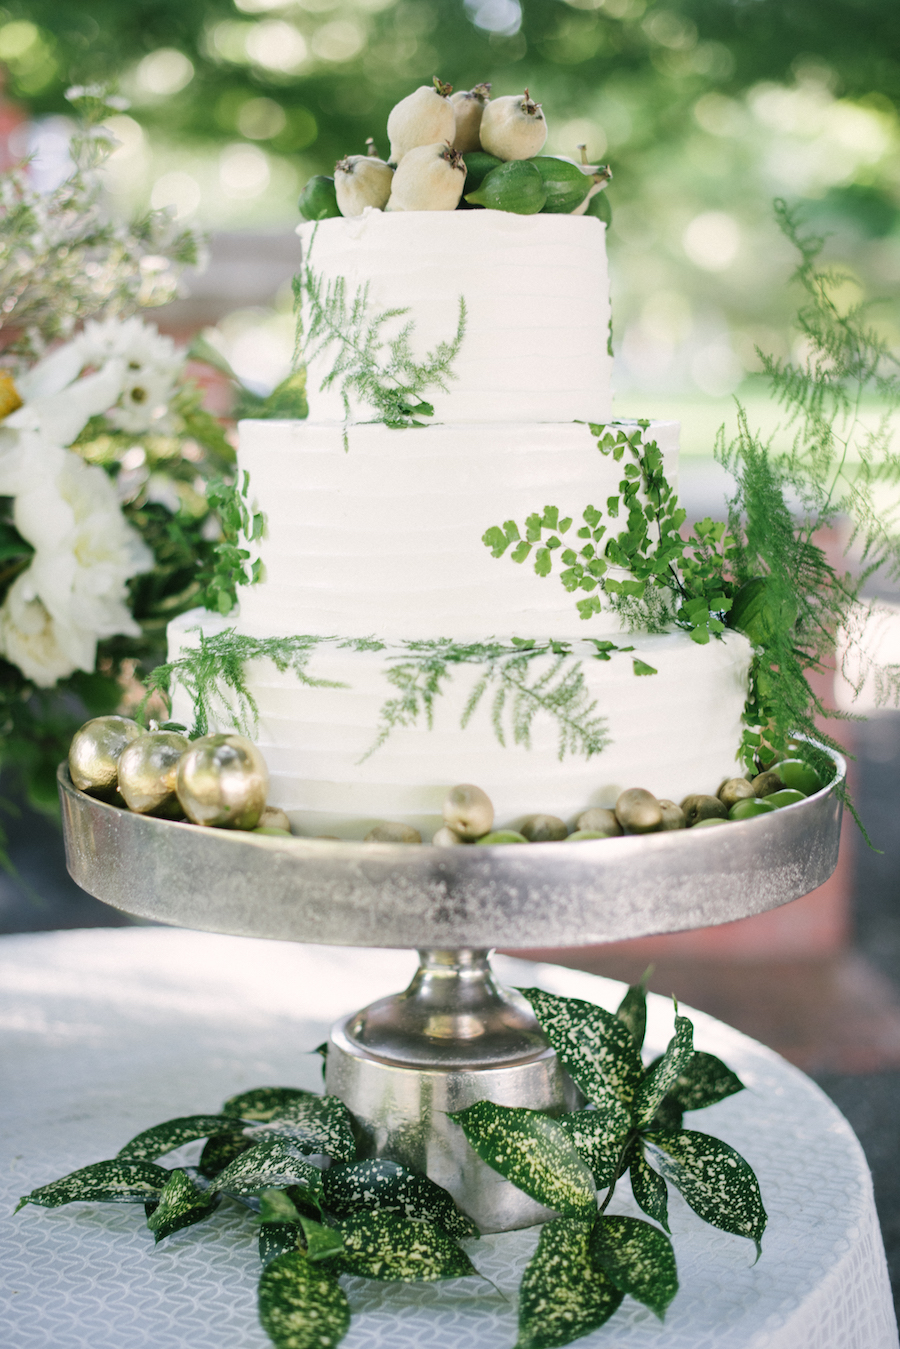 Beaulieu Garden Wedding Featured on Carats & Cake1